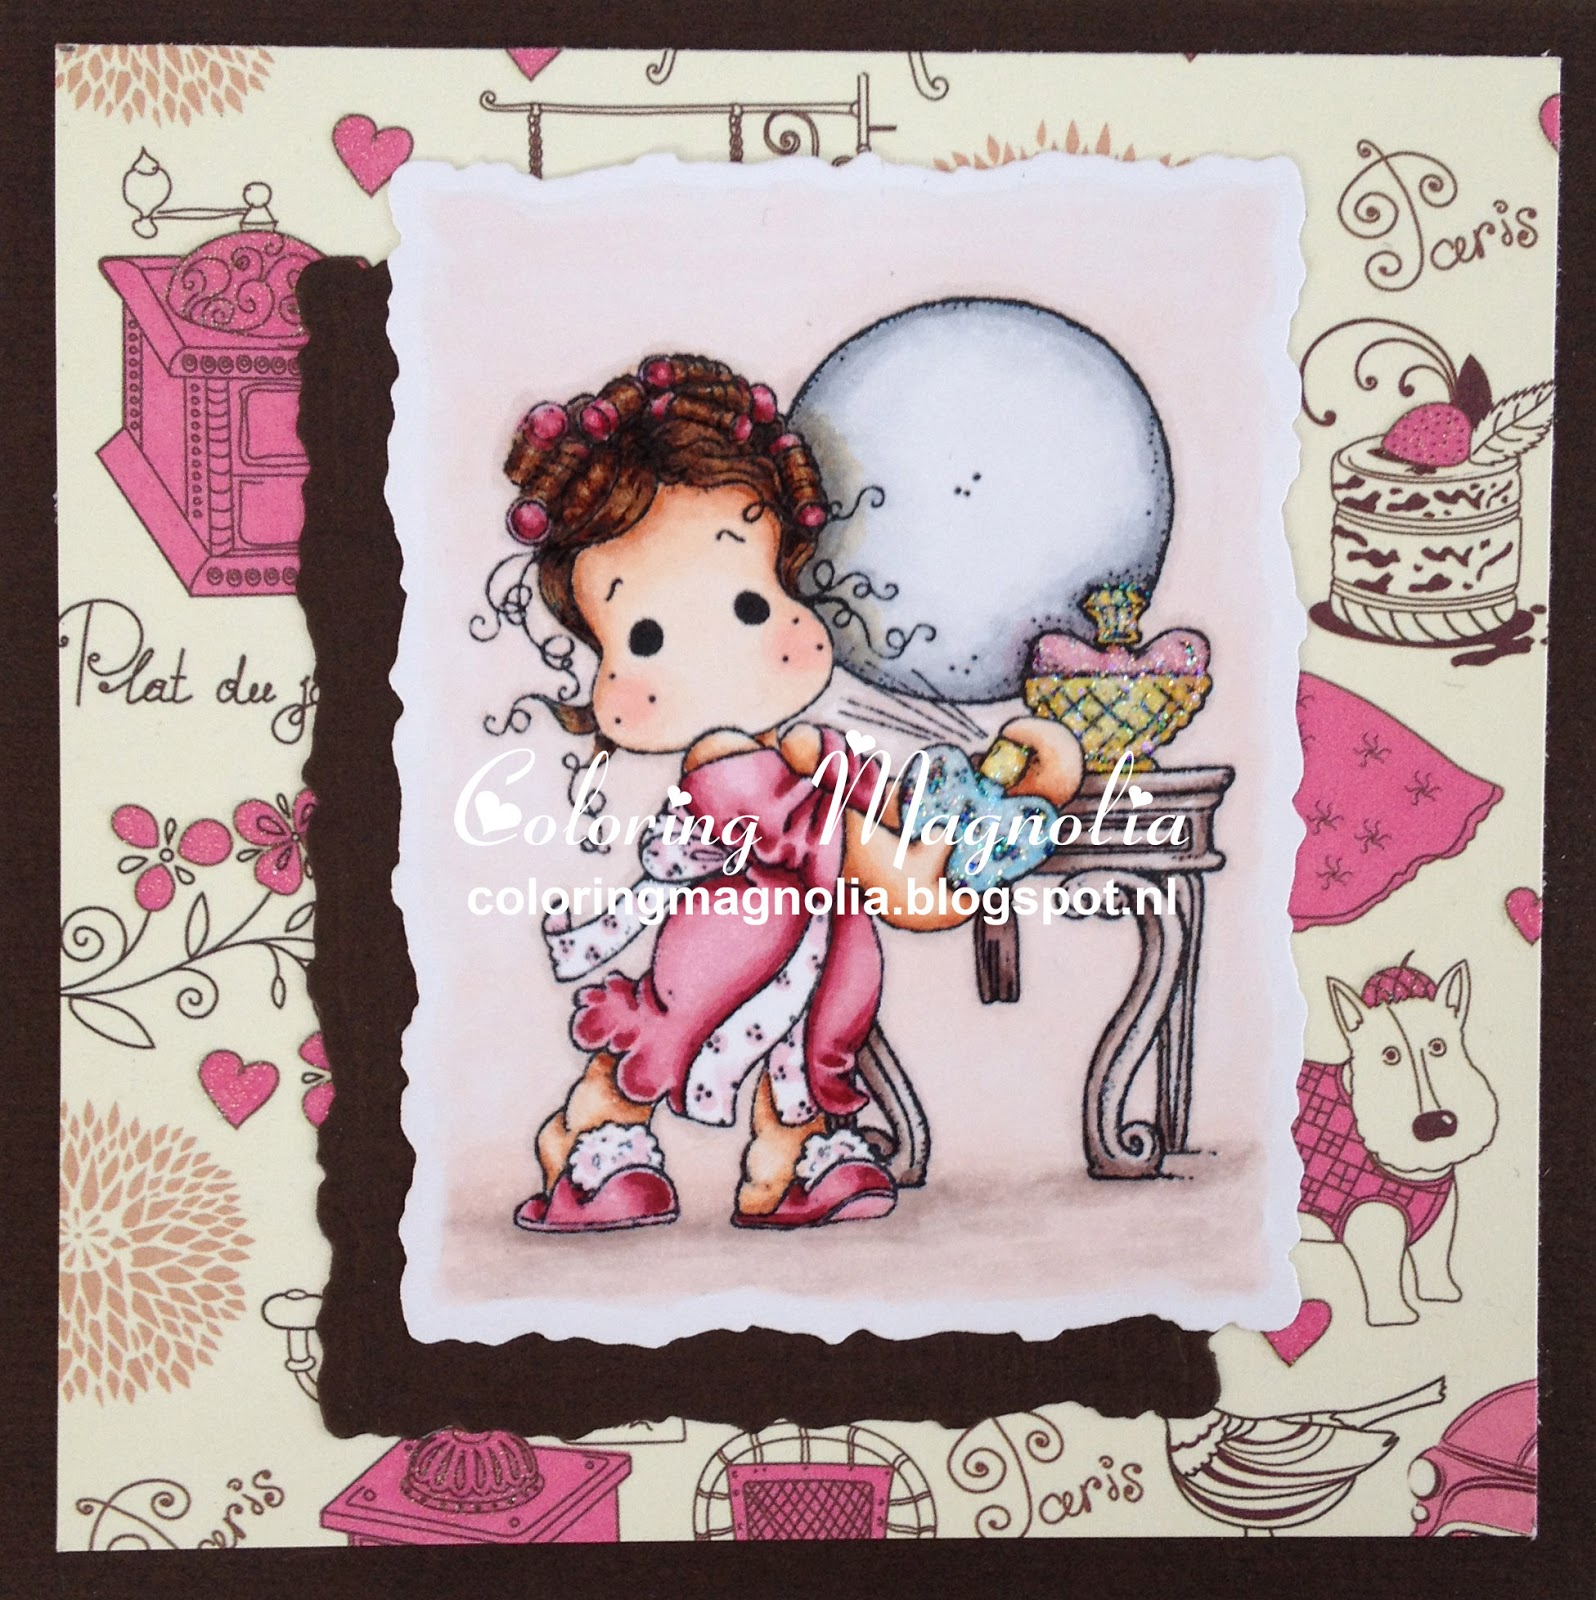 Coloring Magnolia Stamp 2014 Lost And Found Collection - Tilda Rose Scent - Tilda's Dressing Table